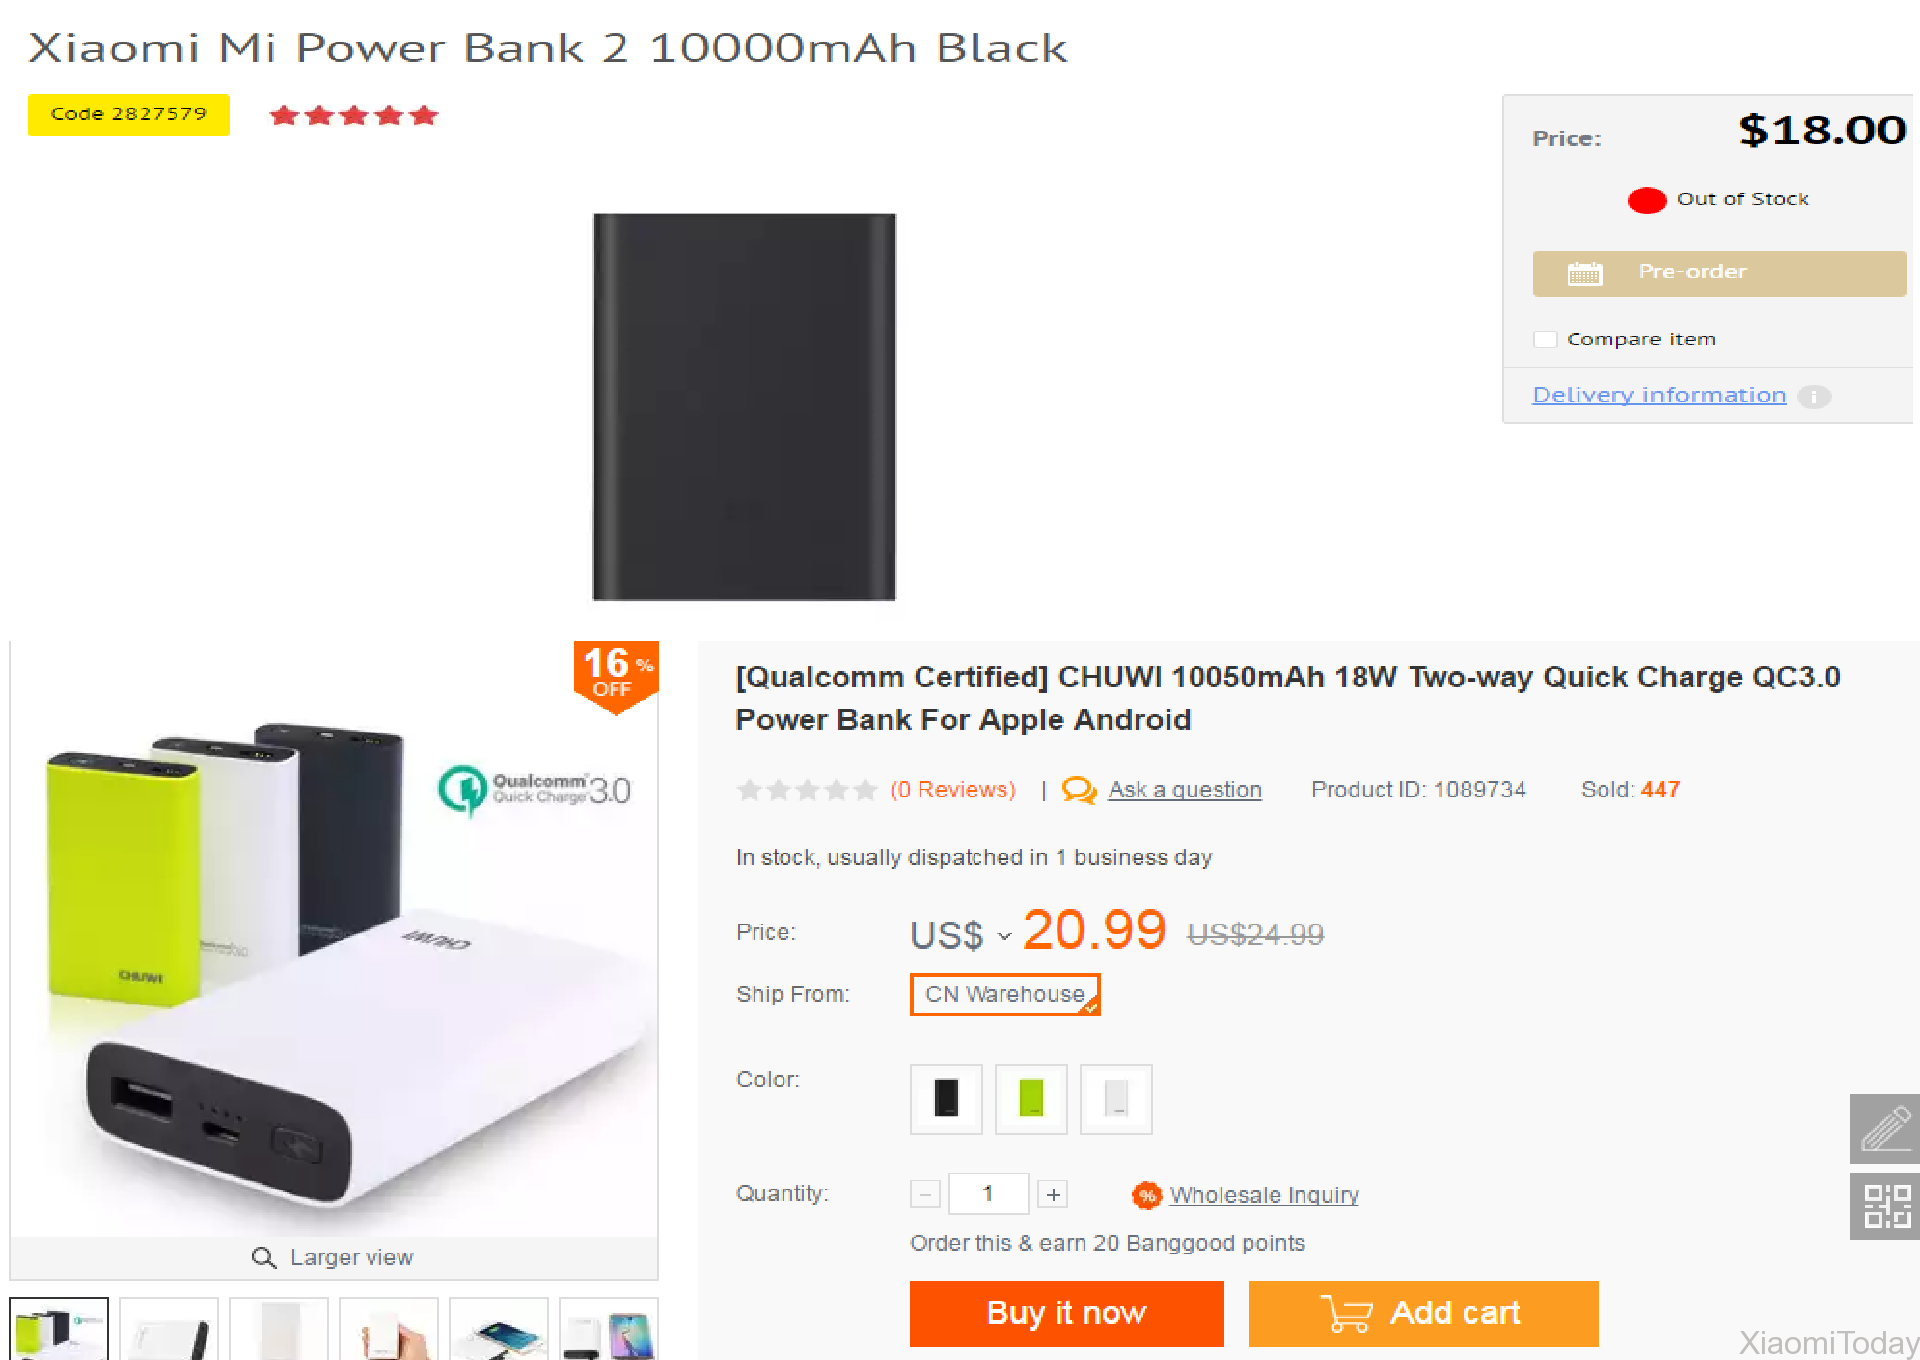 Xiaomi Mi Powerbank 2 10000mah vs Chuwi Hi-Power 10050mah Powerbank Price